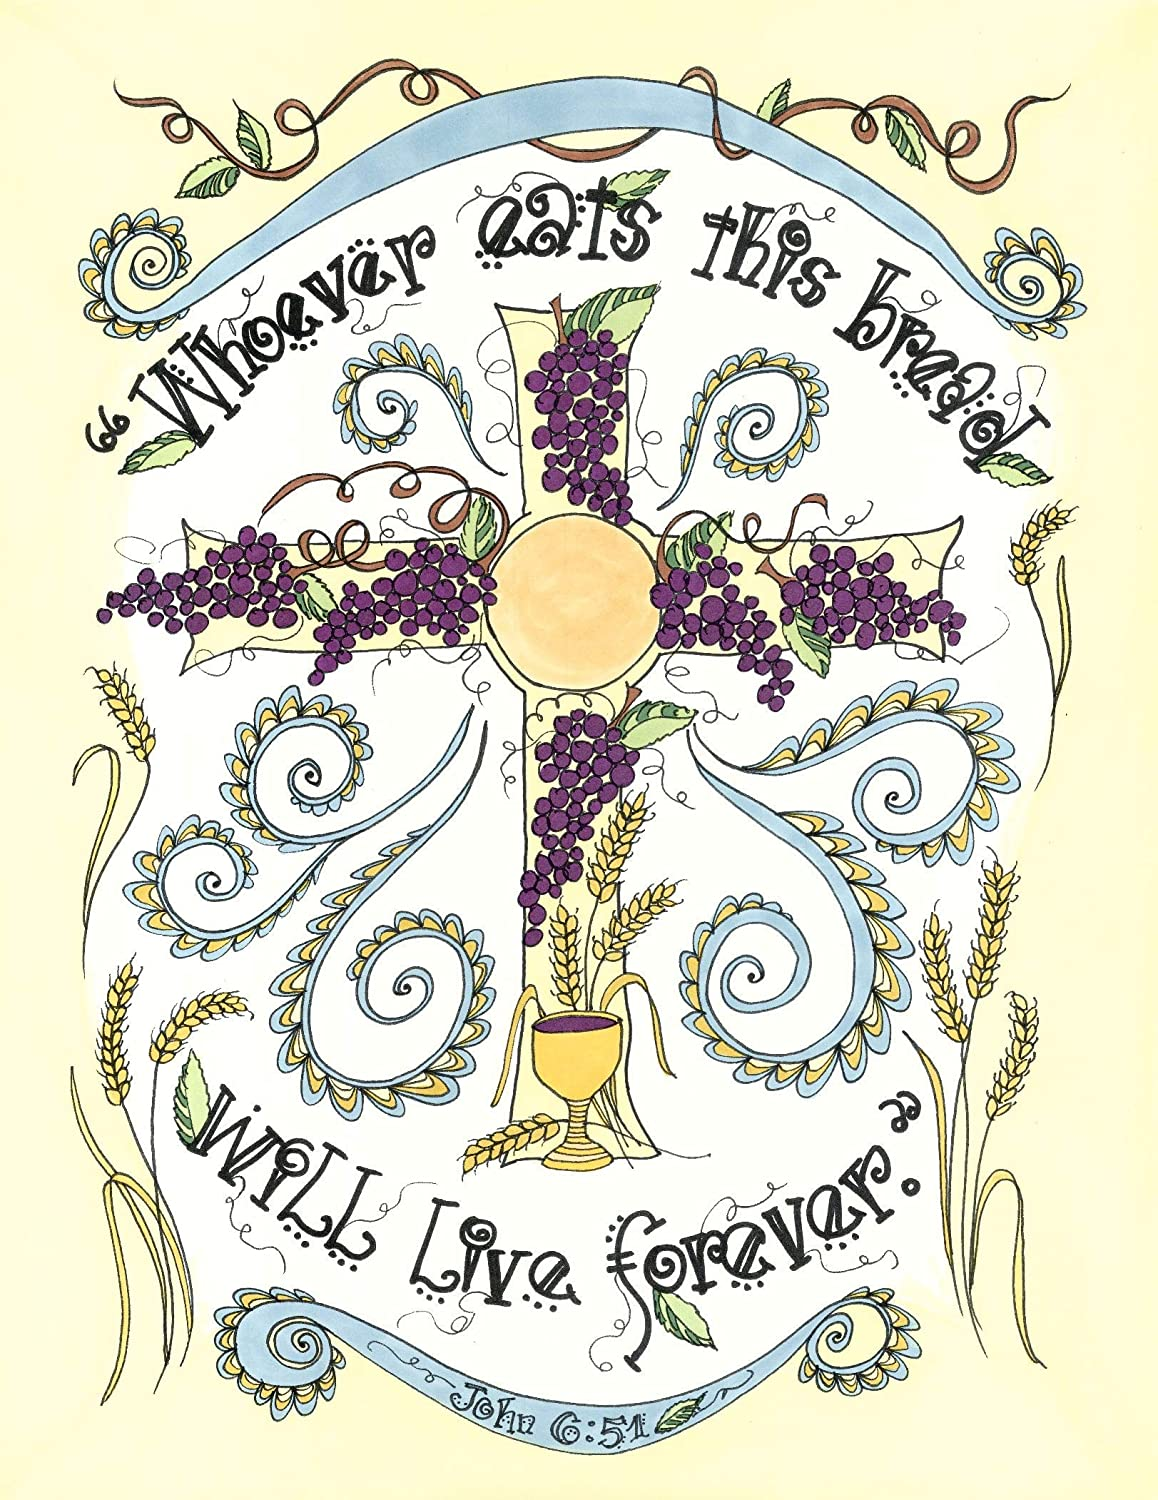 Bread of Life 8x10 - Catholic First Communion Gift